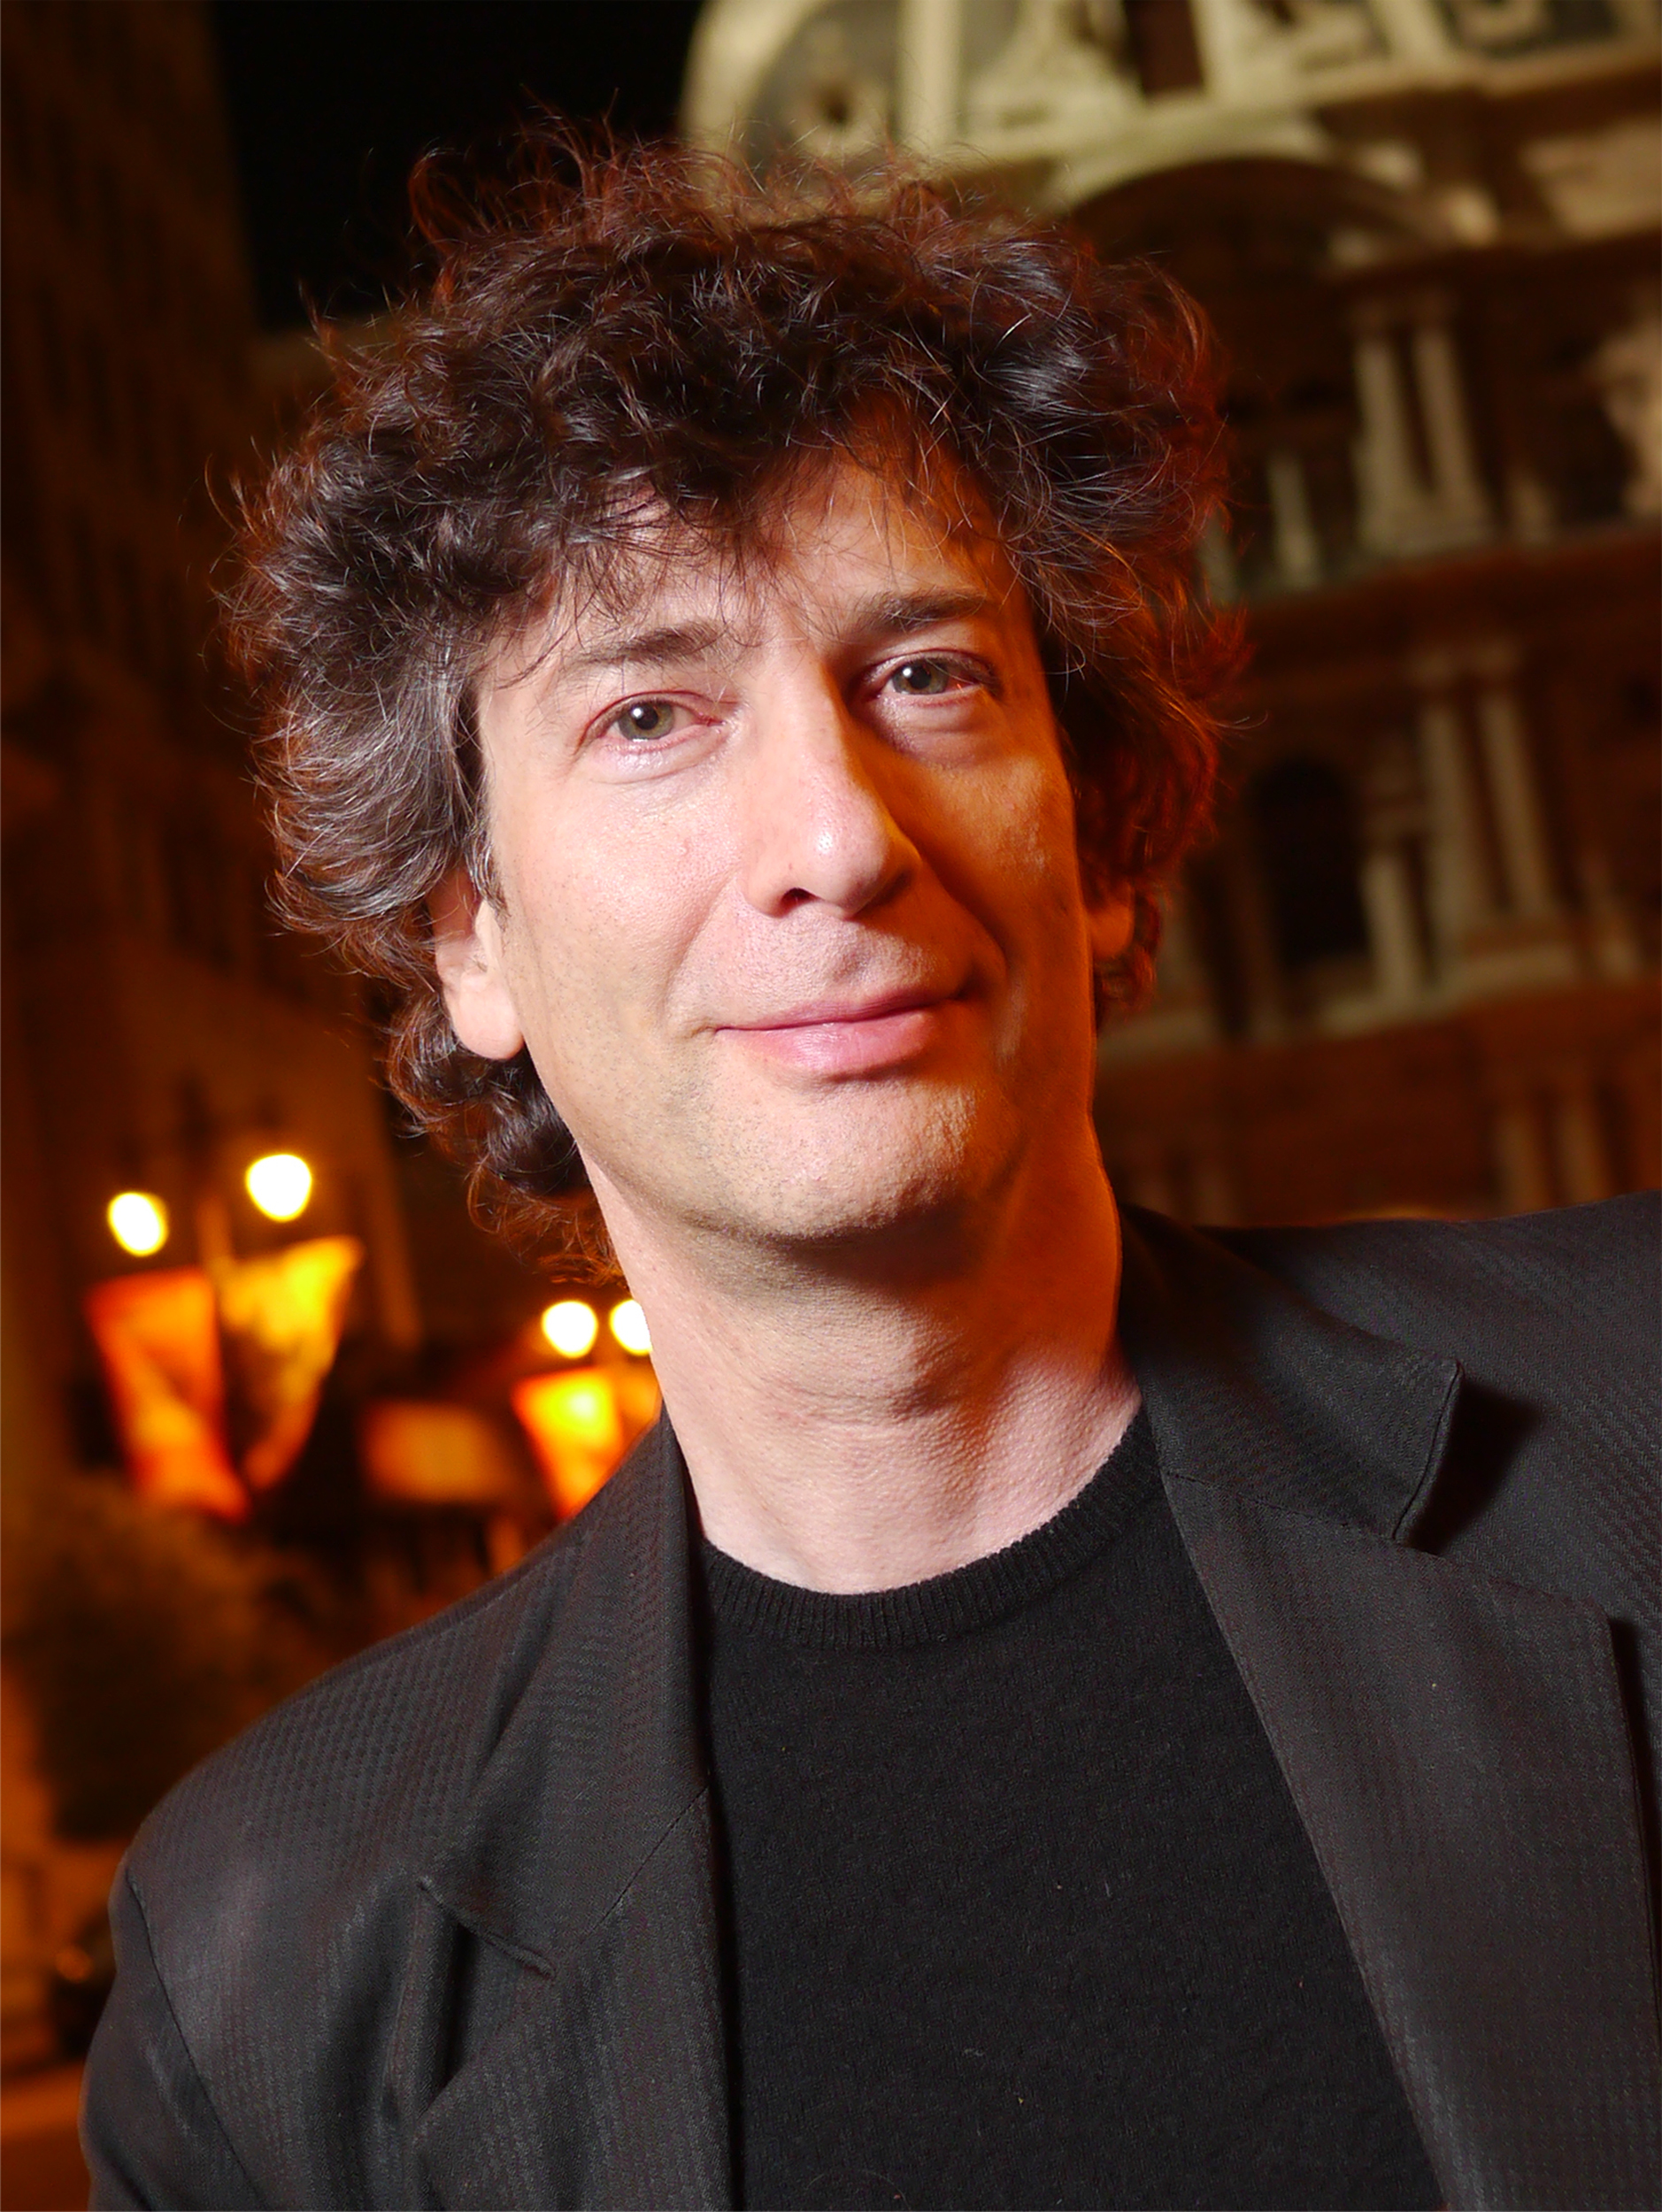 Neil Gaiman earned a  million dollar salary, leaving the net worth at 18 million in 2017